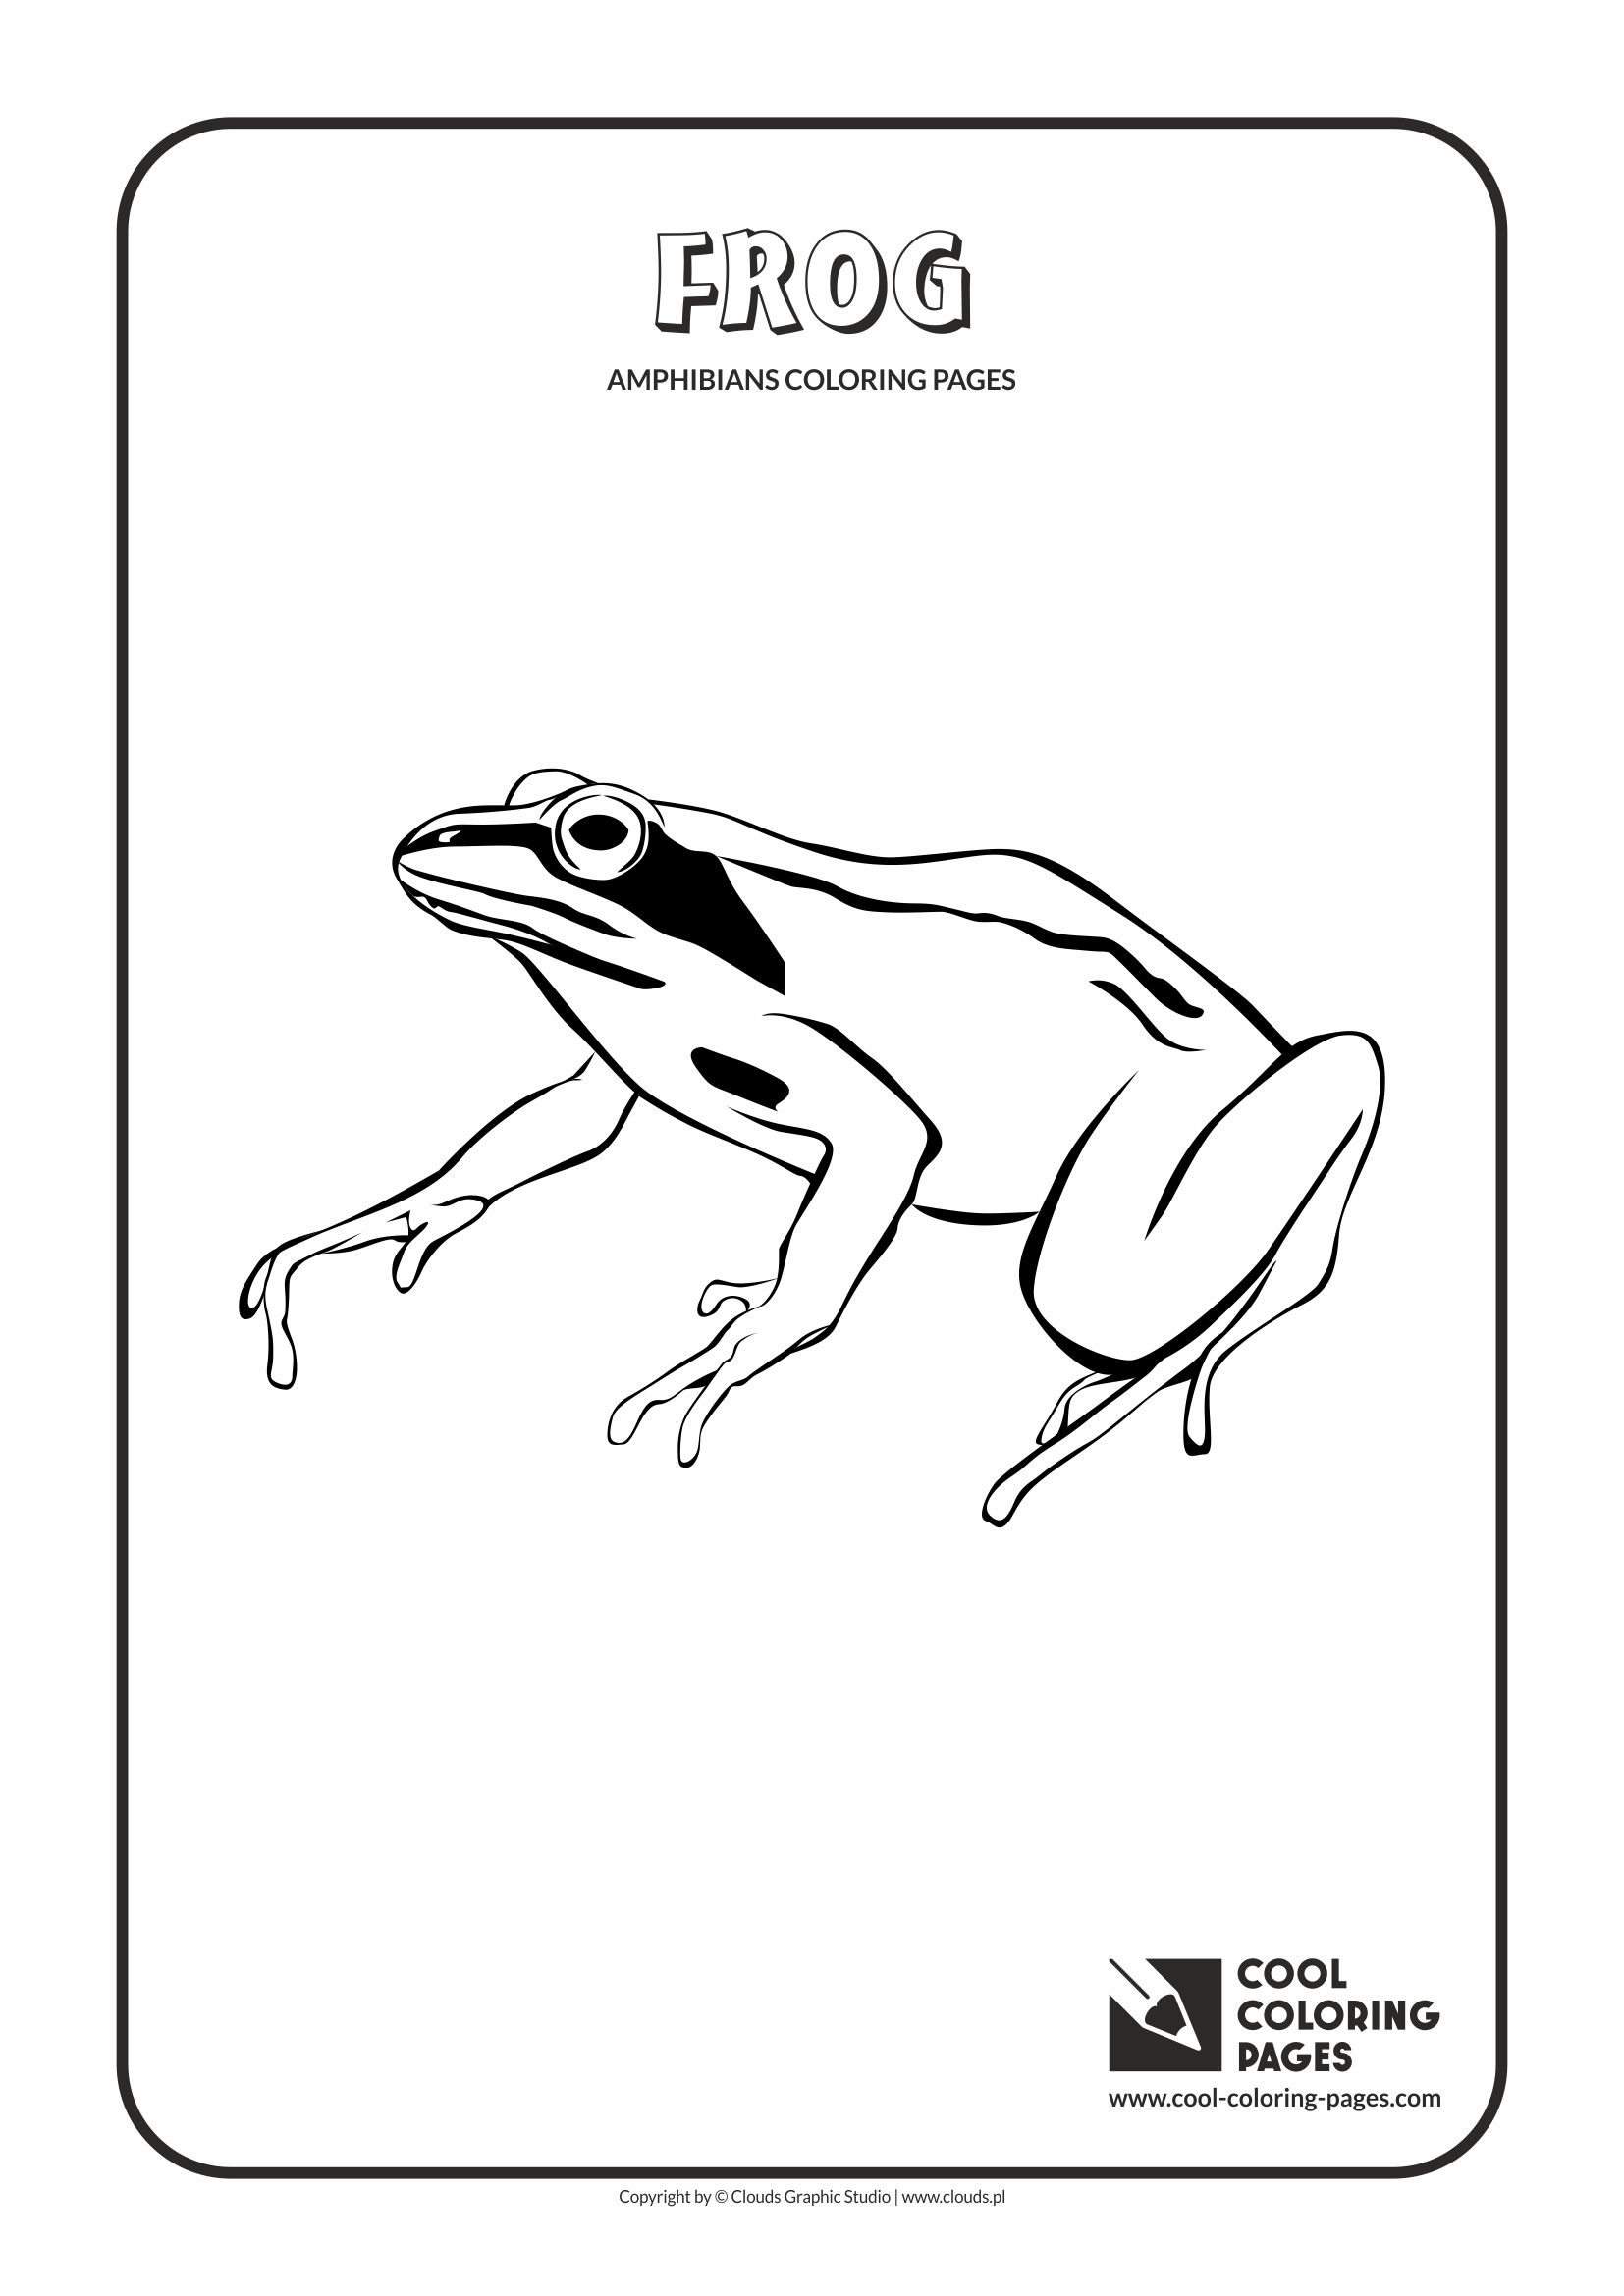 Cool Coloring Pages - Animals / Frog / Coloring page with frog